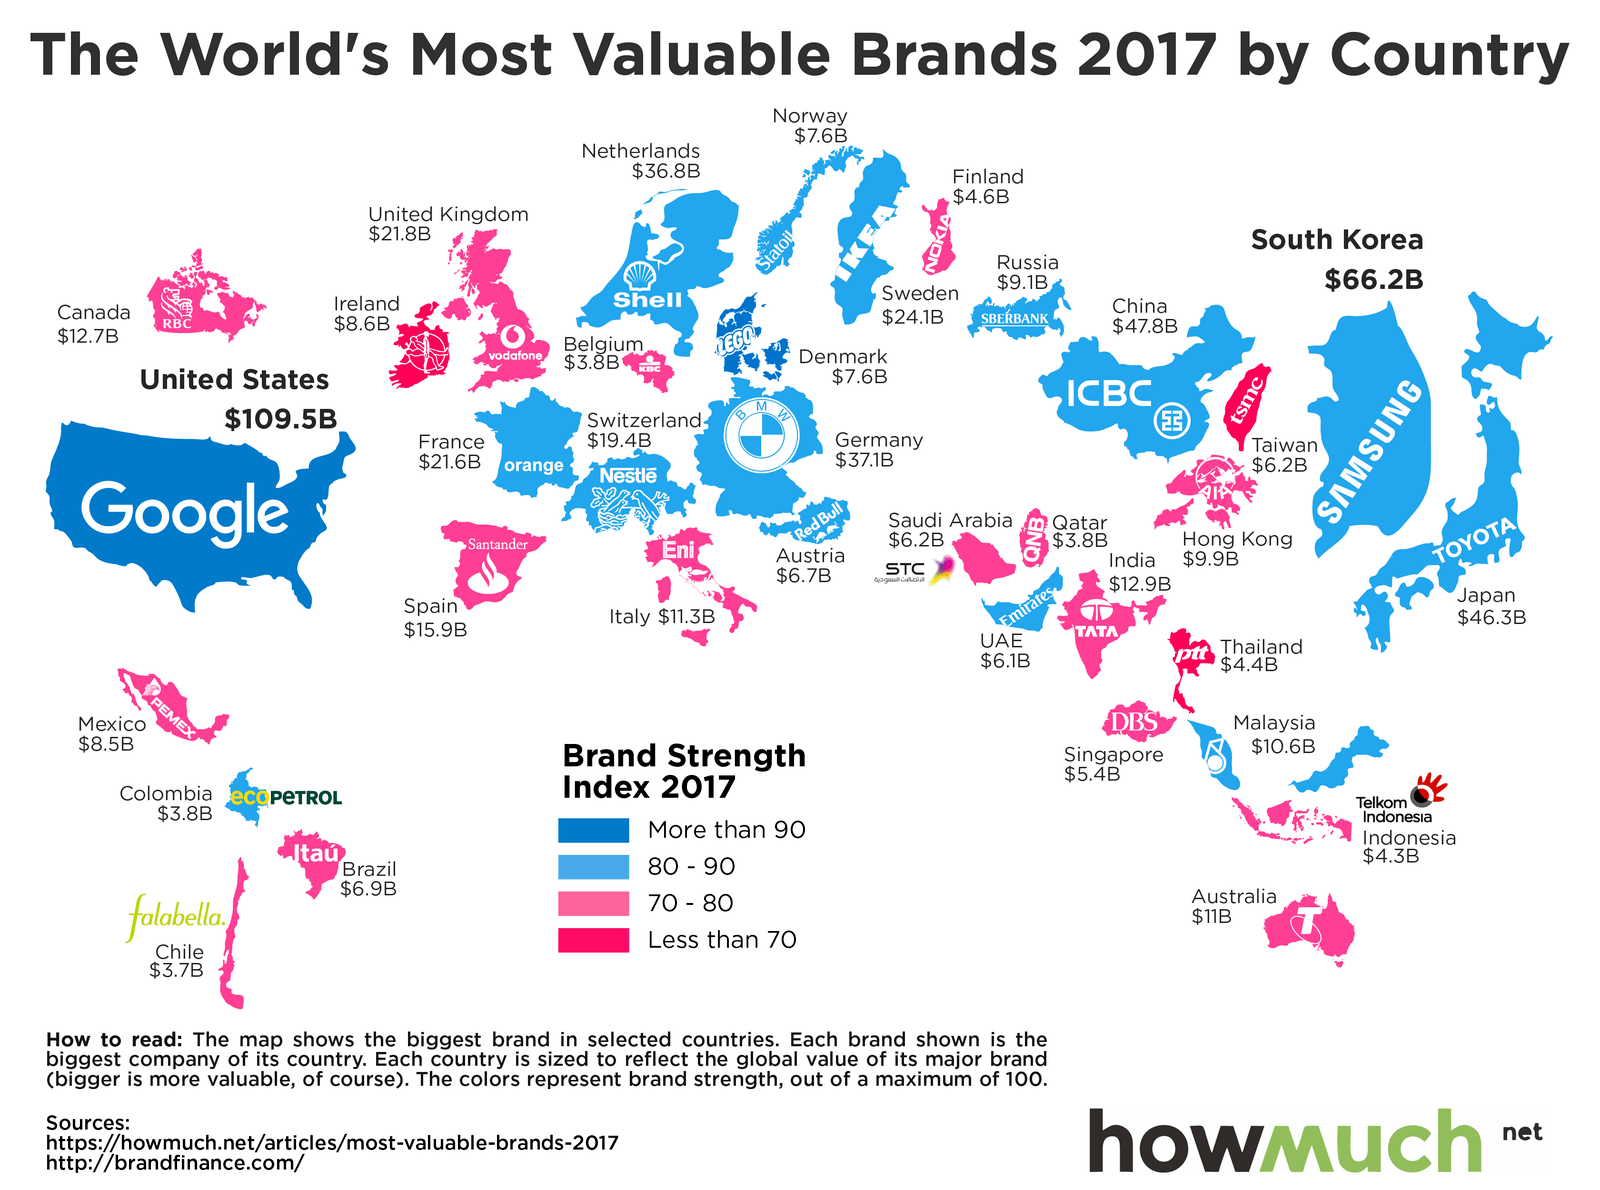 Source: https://howmuch.net/articles/most-valuable-brands-2017